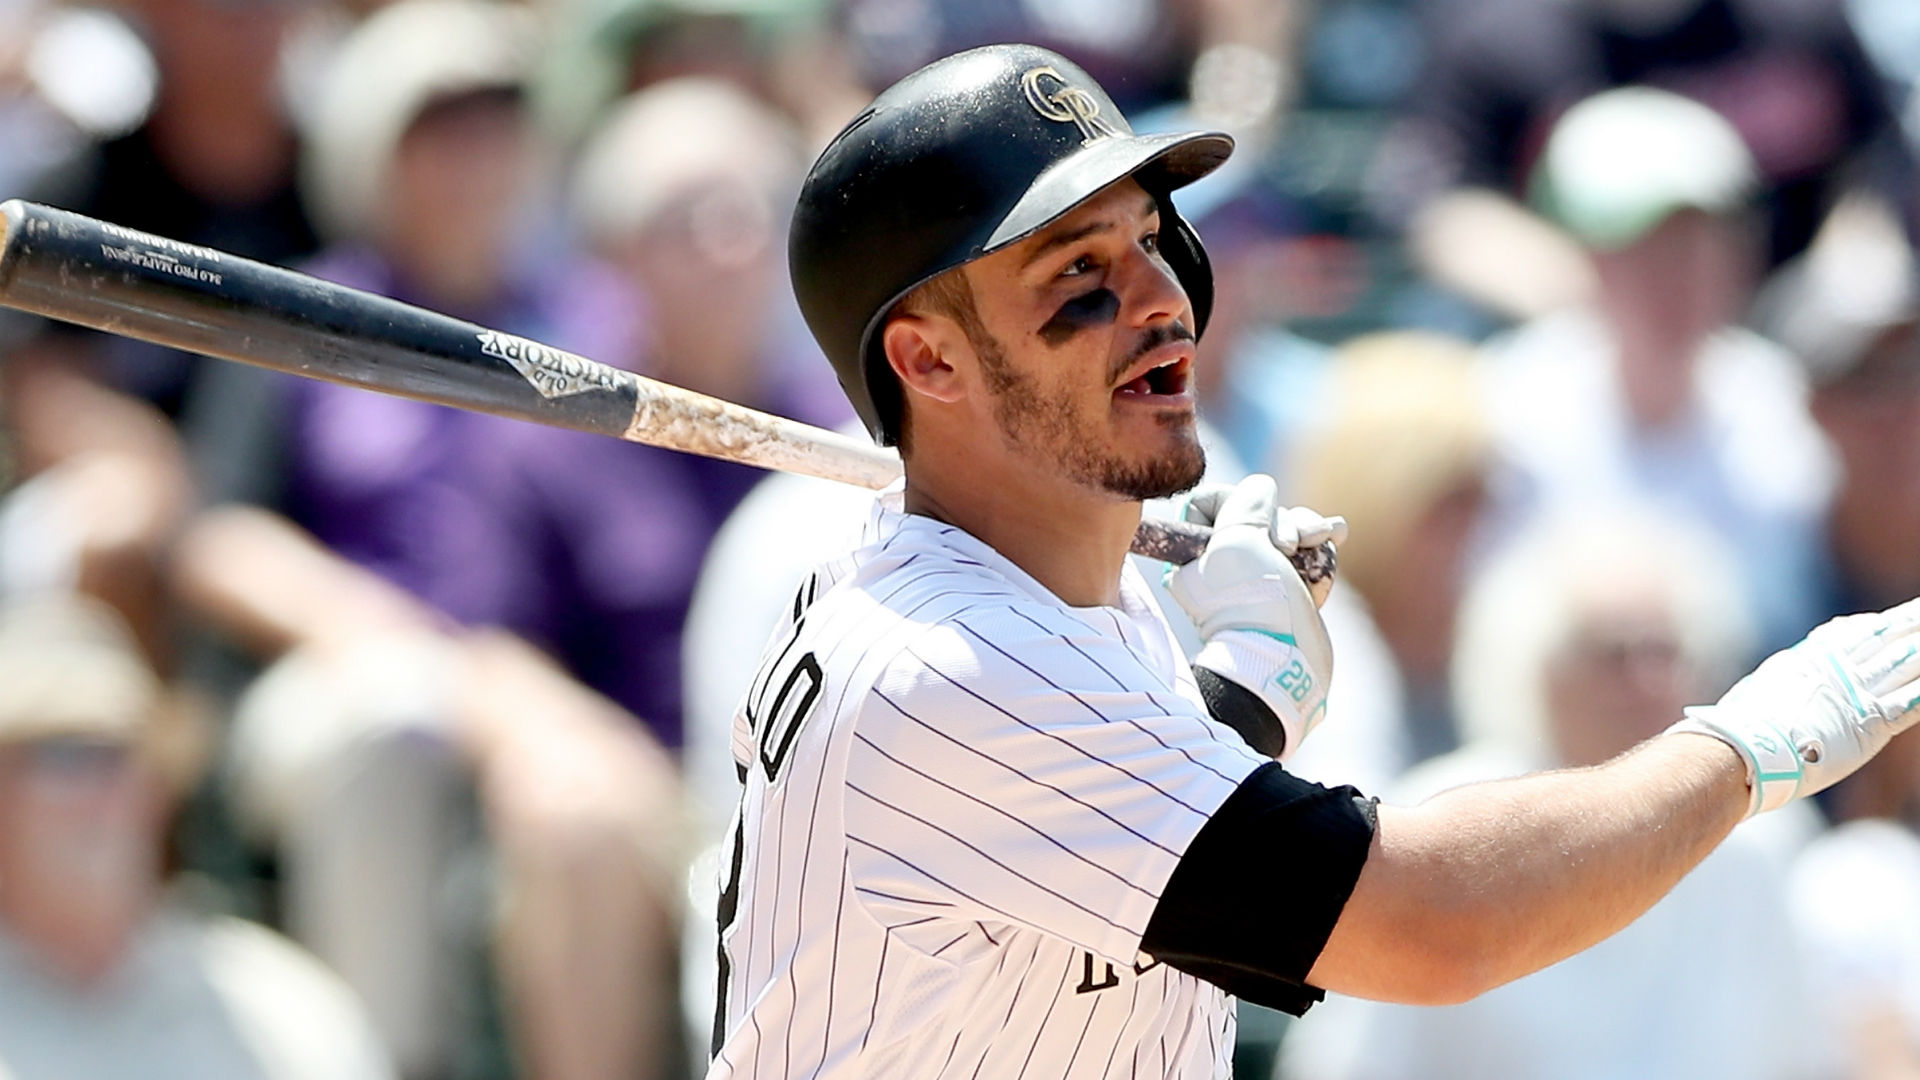 Rockies' Arenado caps off cycle in game-winning fashion